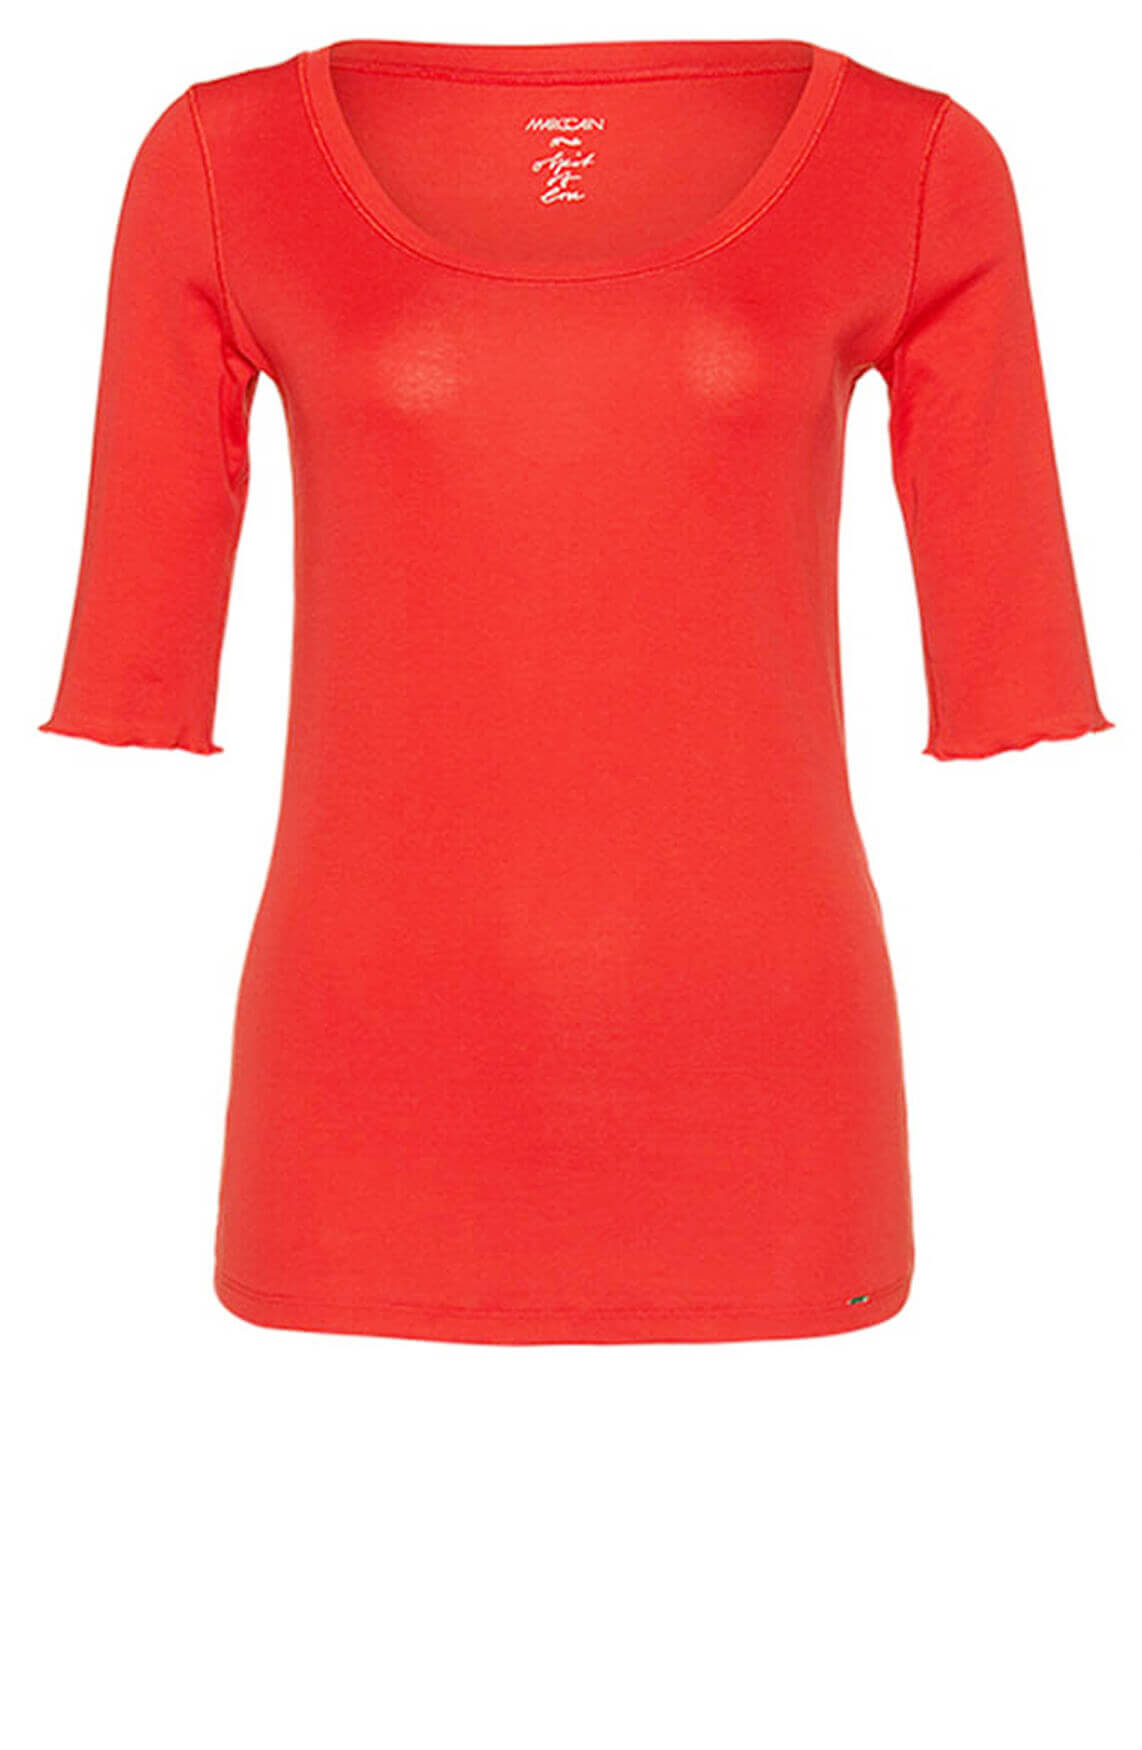 Marccain Dames Basic shirt Rood